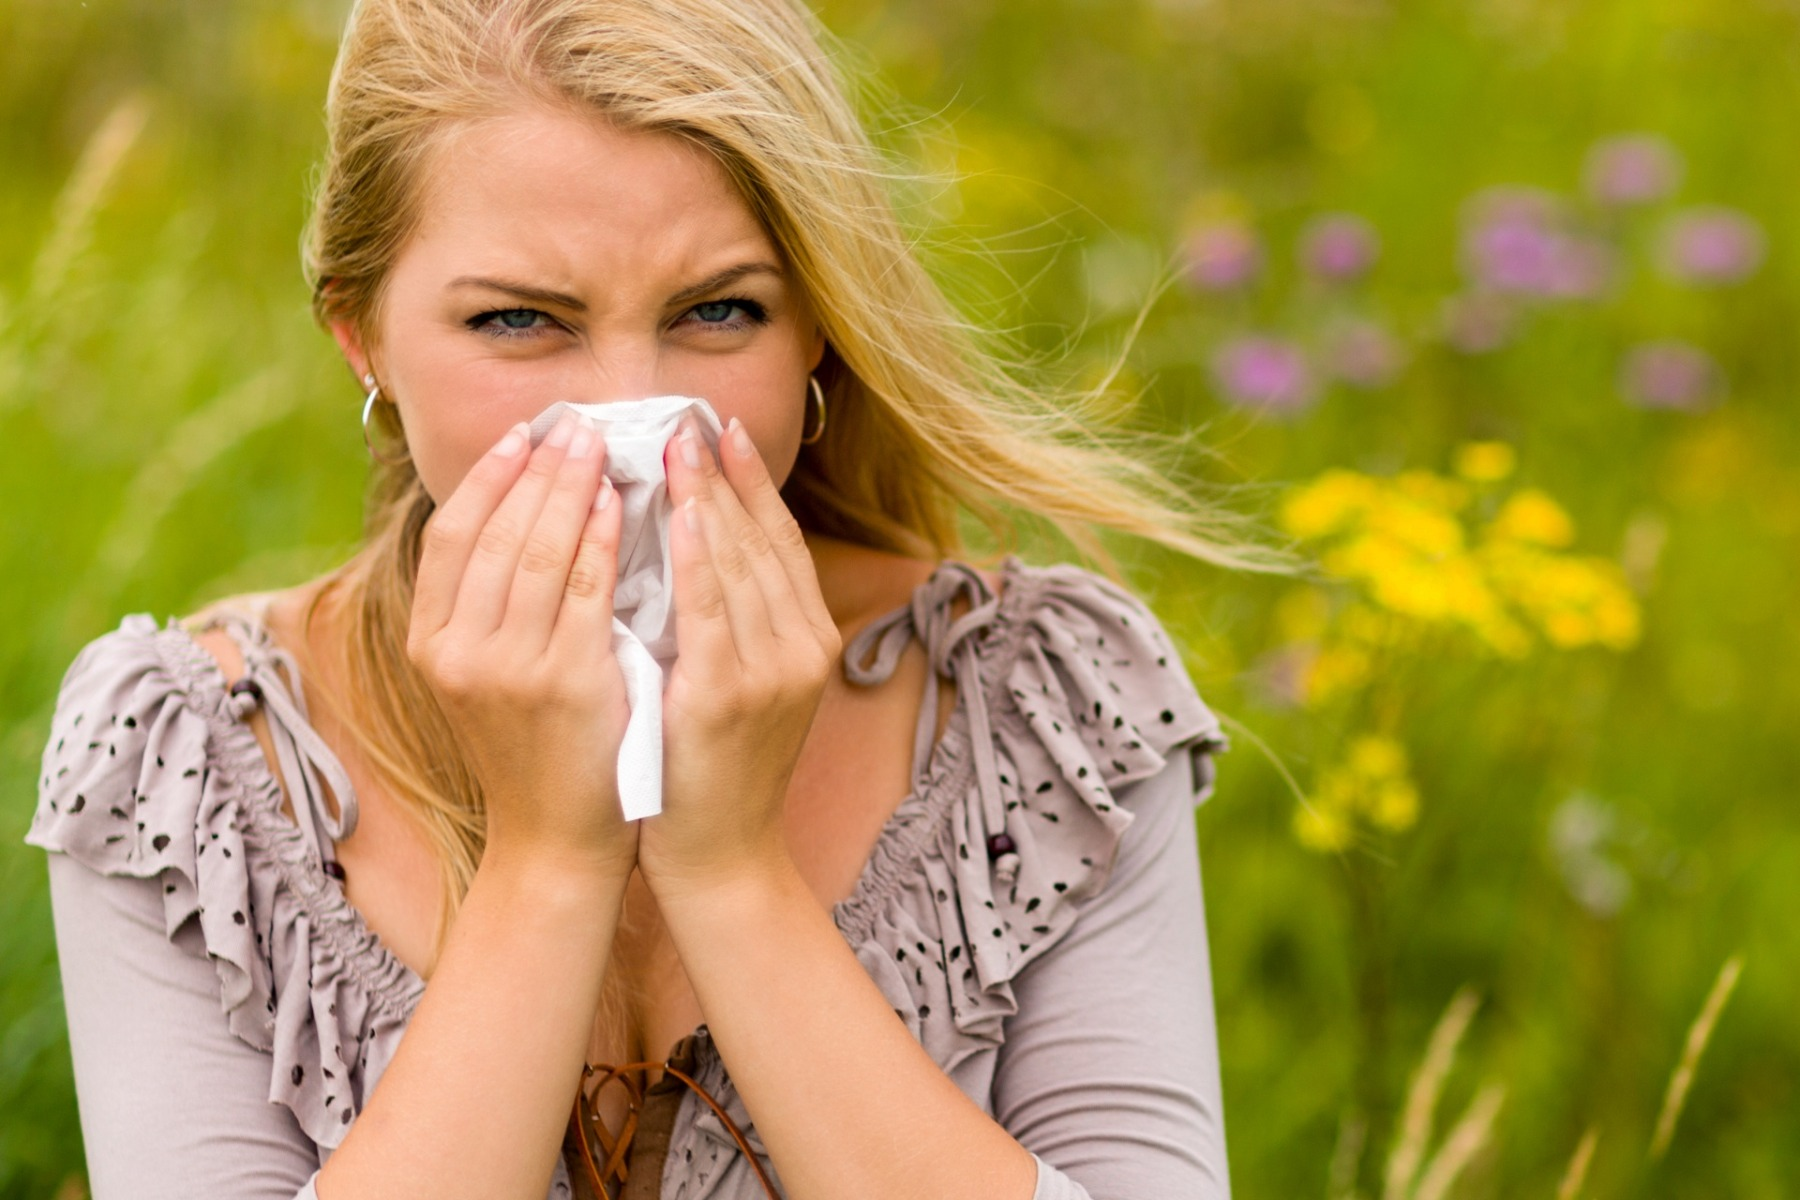 Lady sneezing with hay fever